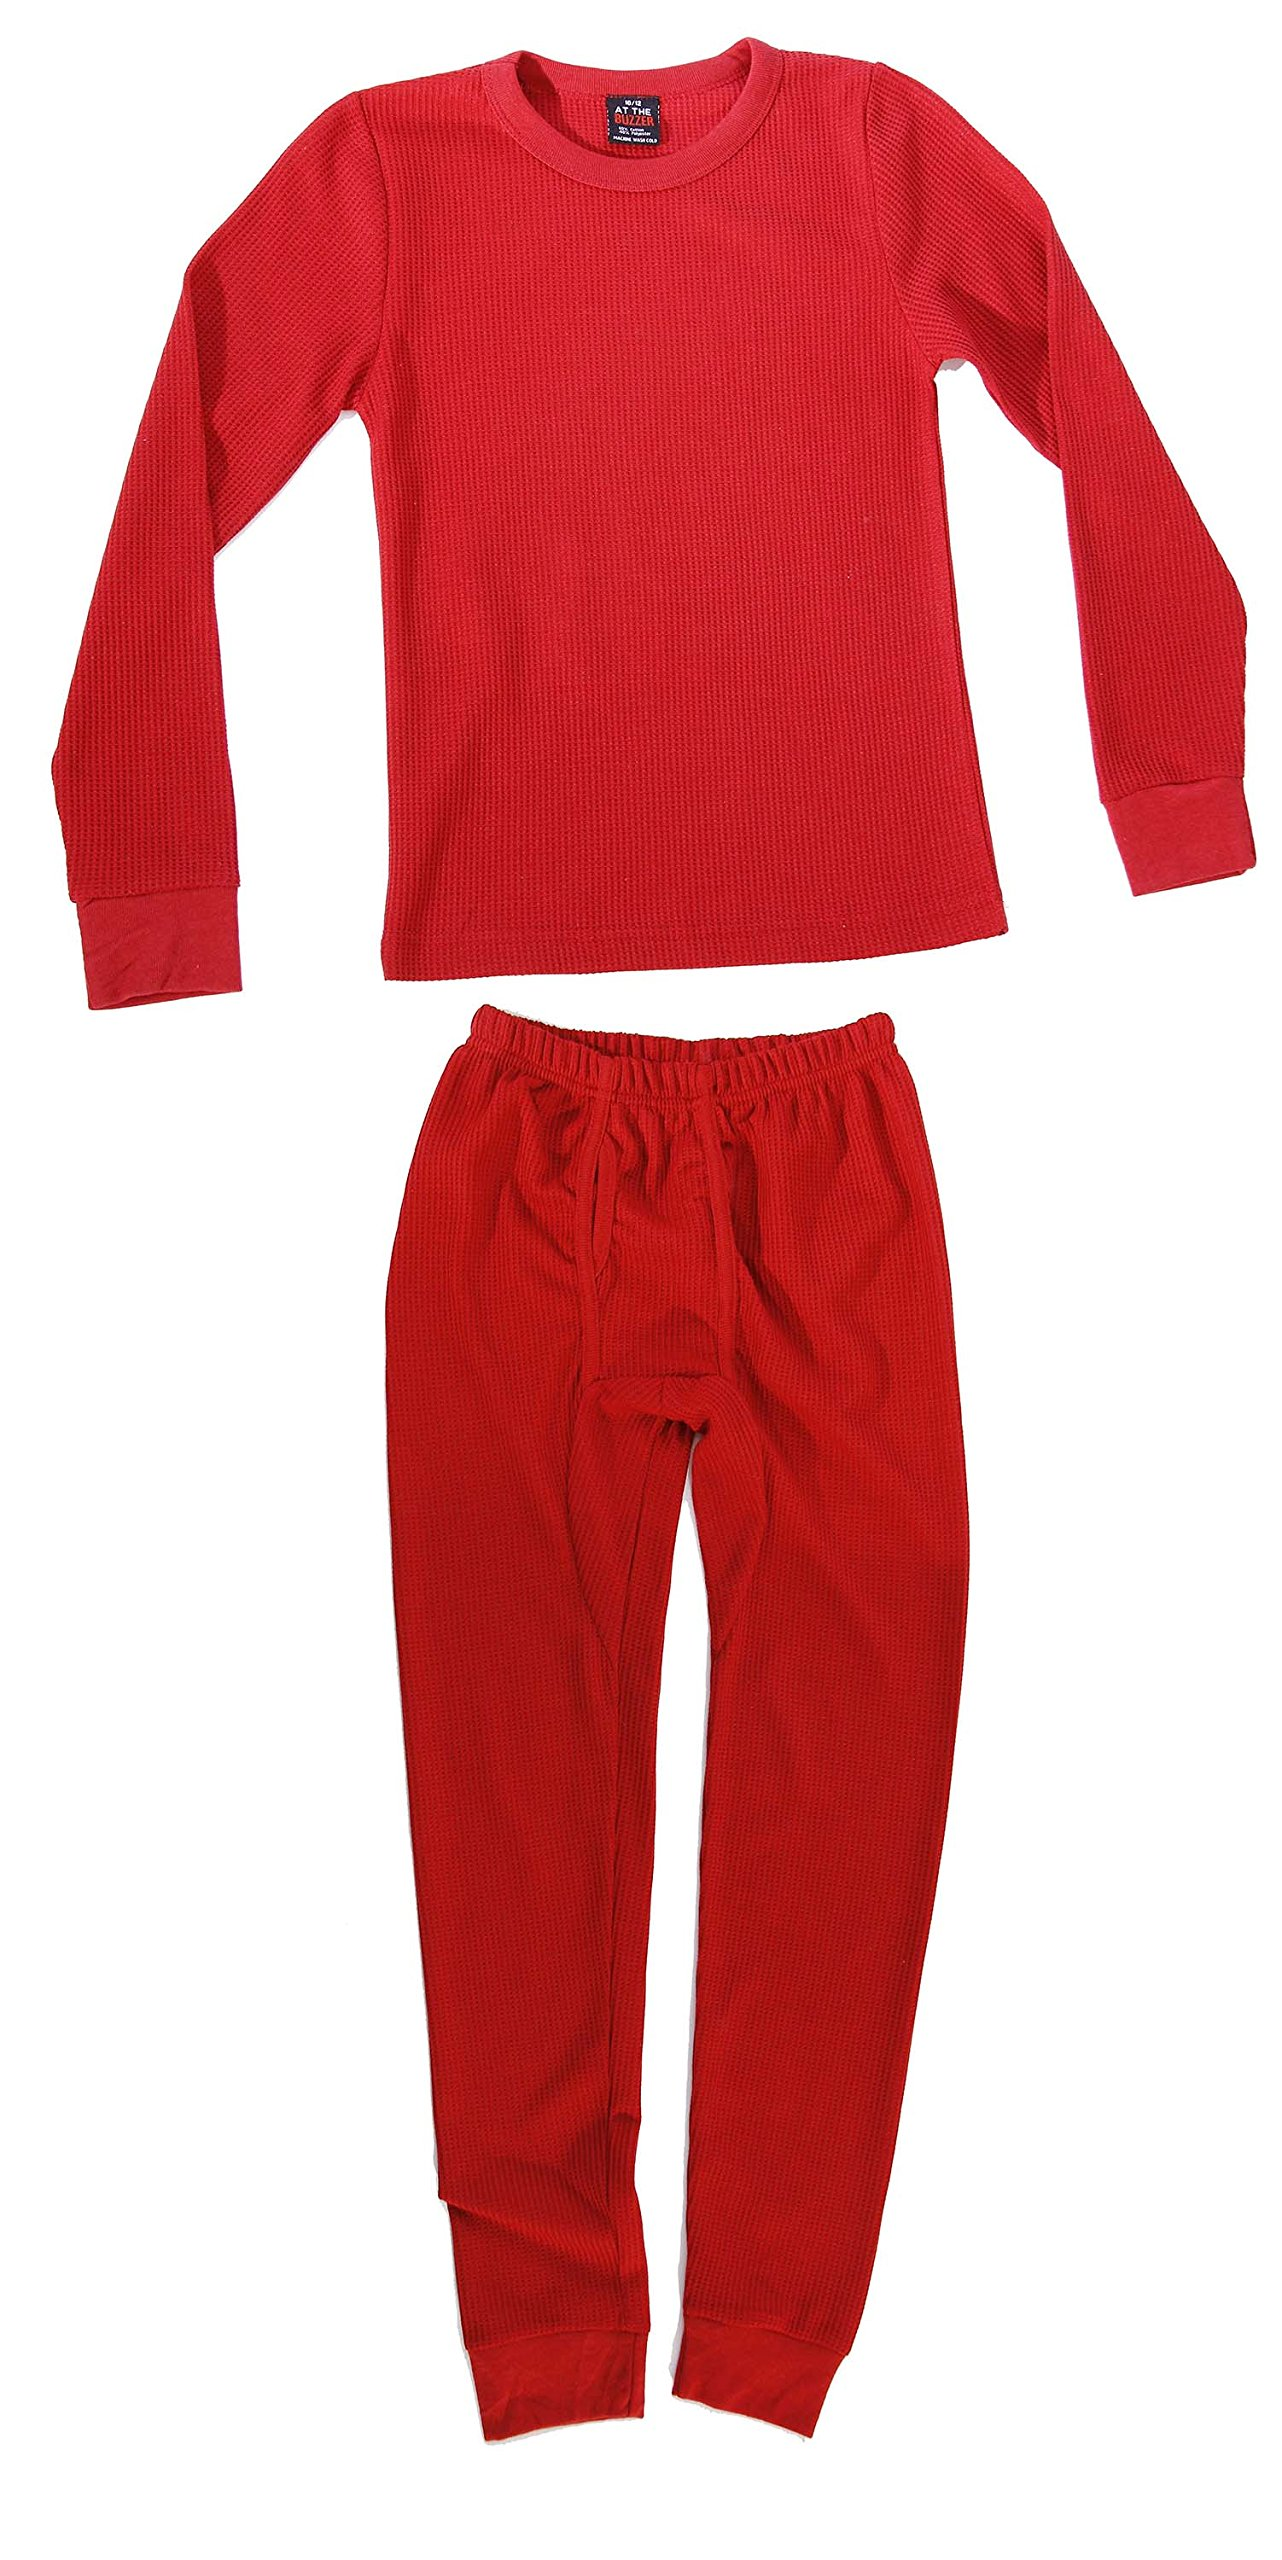 At The Buzzer Thermal Underwear Set For Boys 95362-Red-8 by At The Buzzer (Image #1)